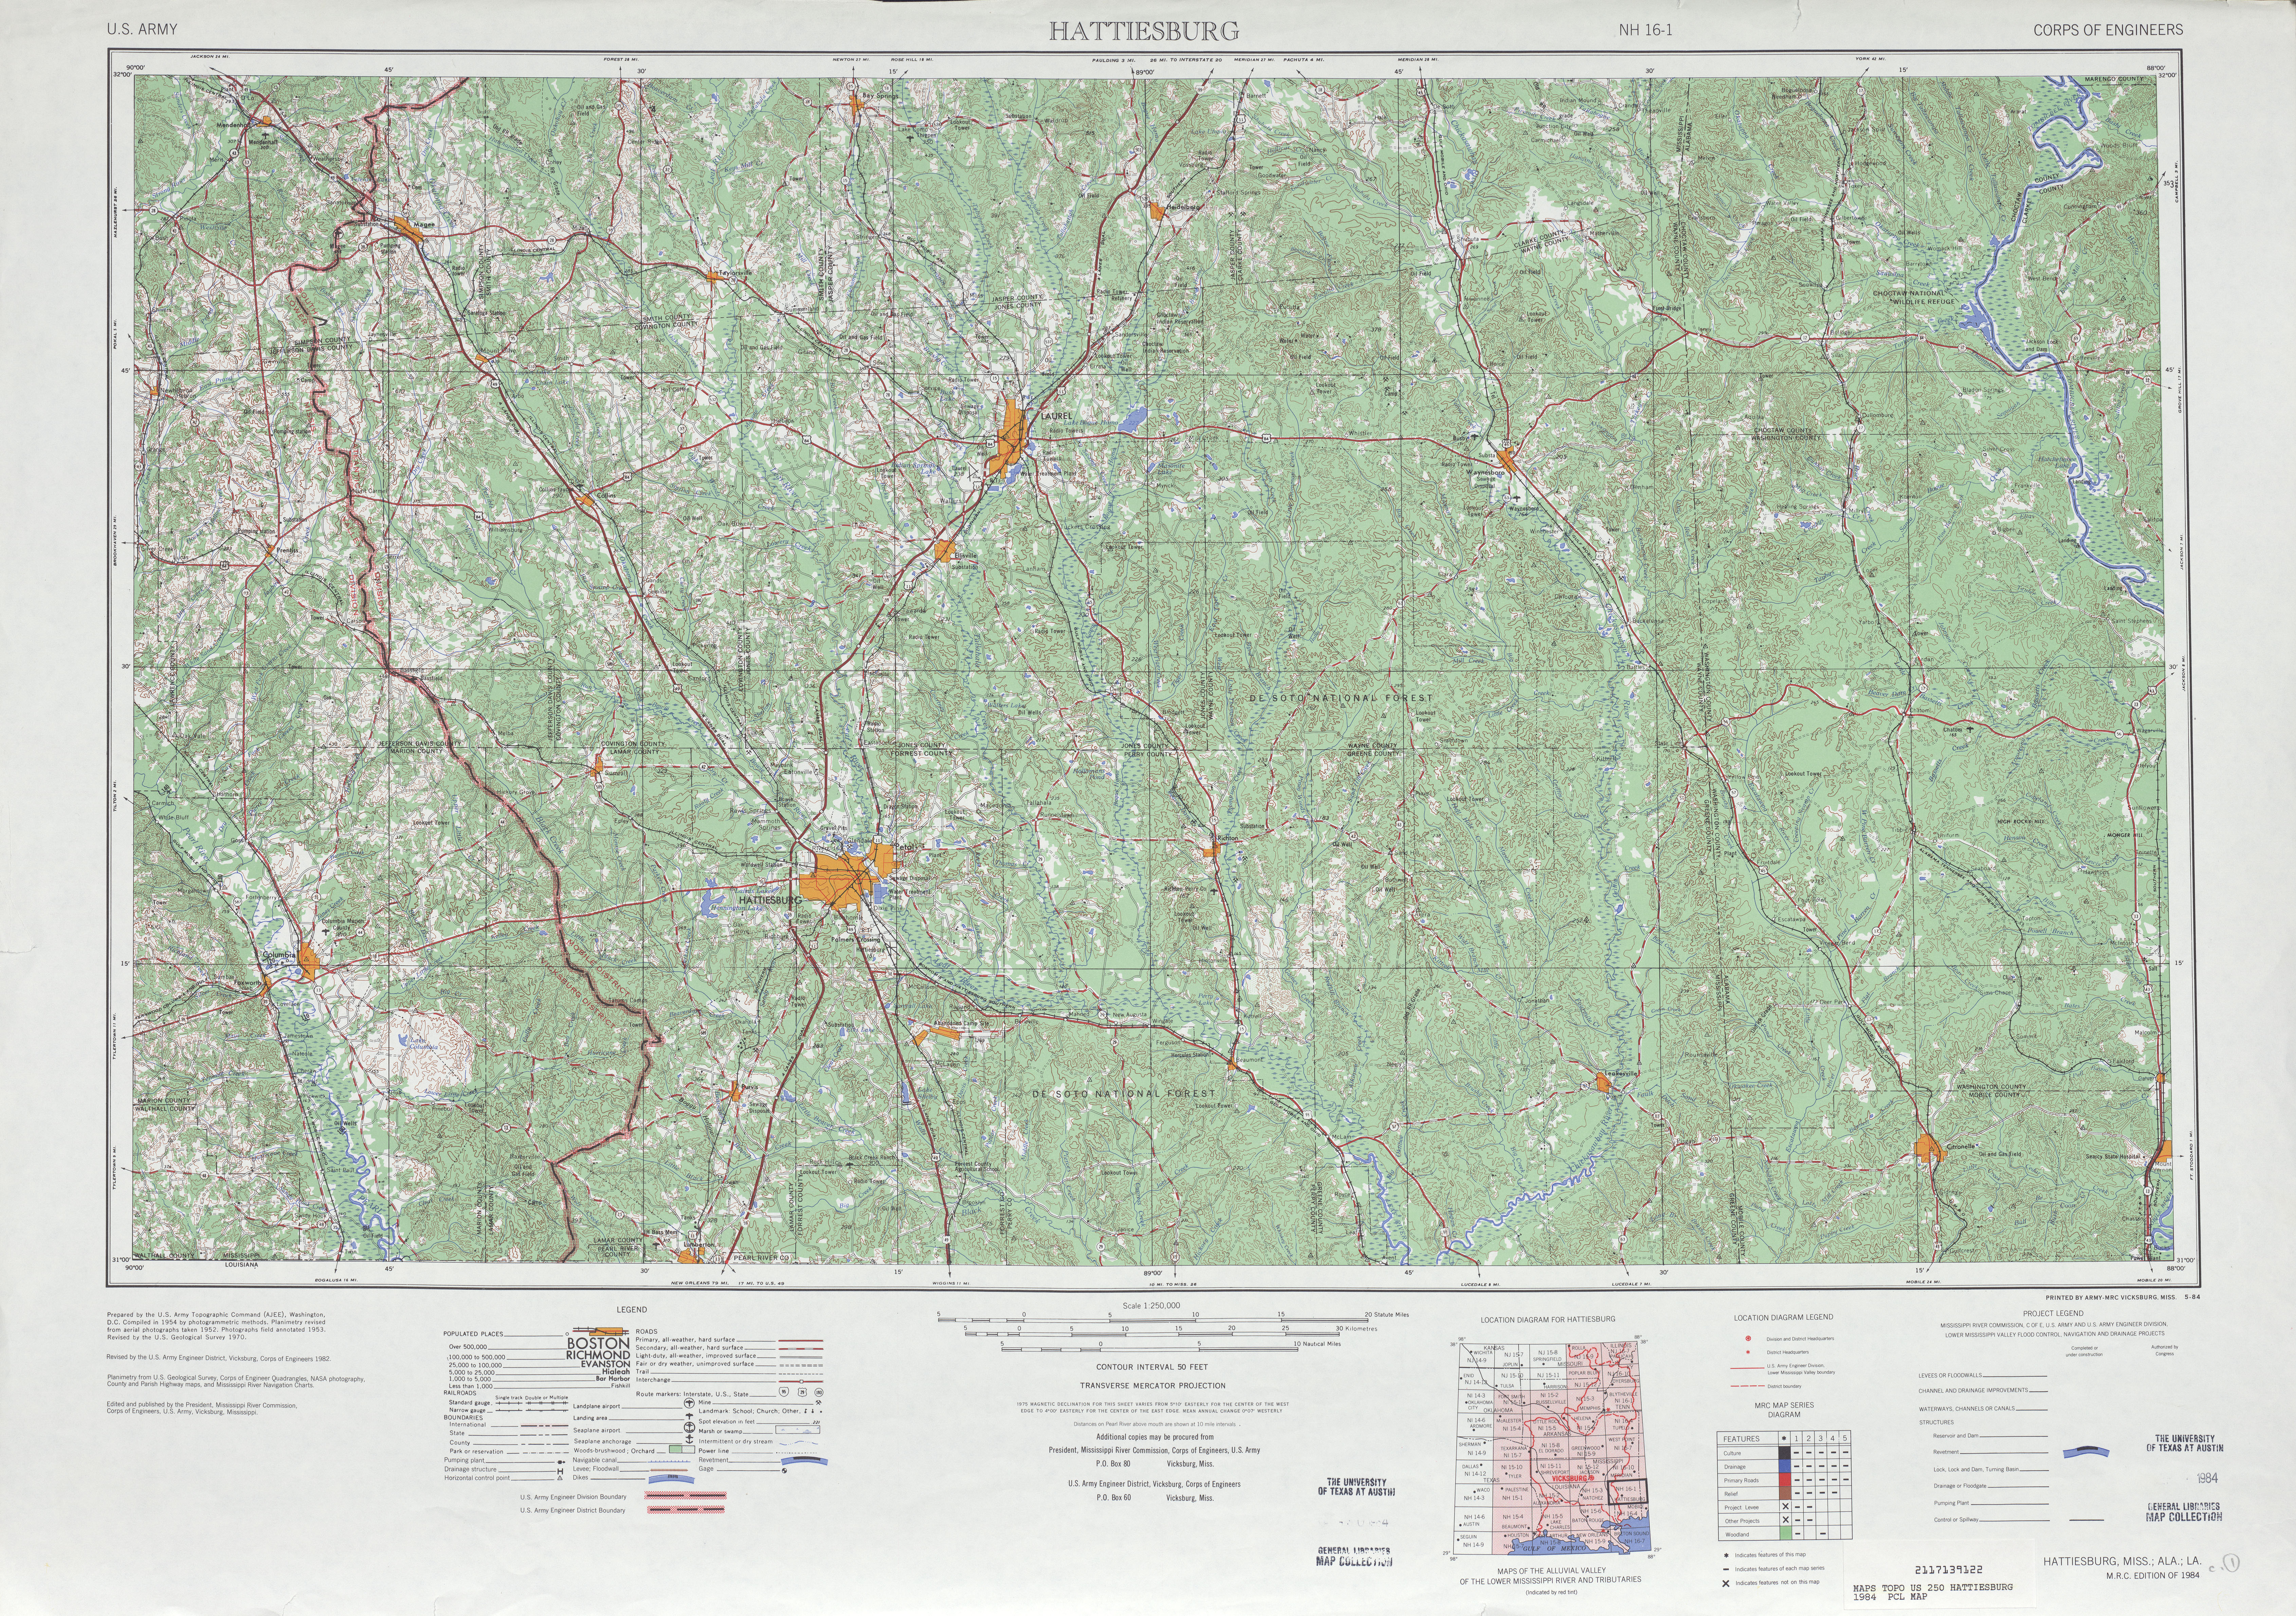 Hattiesburg Topographic Map Sheet, United States 1984